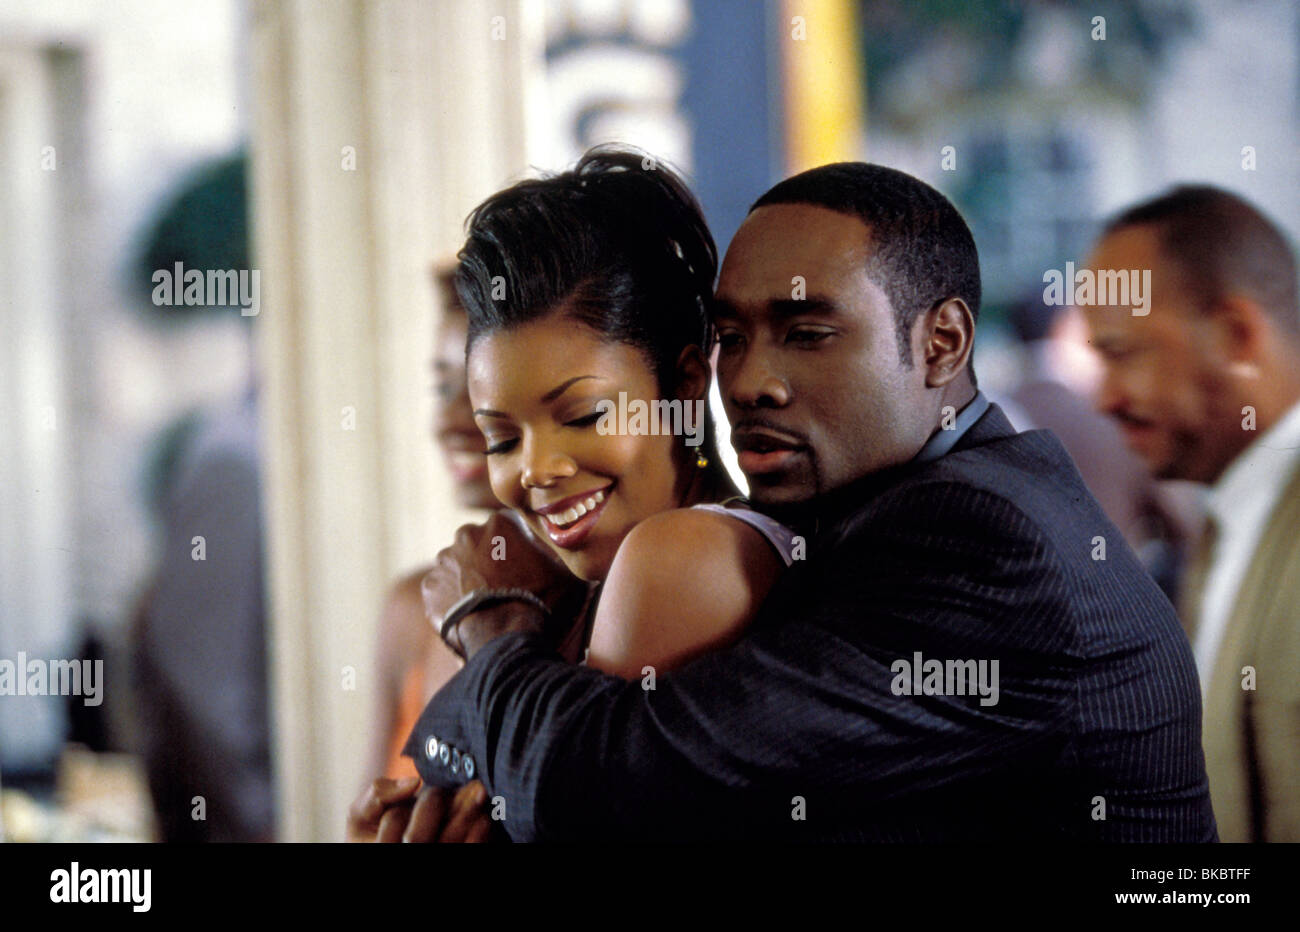 Morris chestnut two can play that game